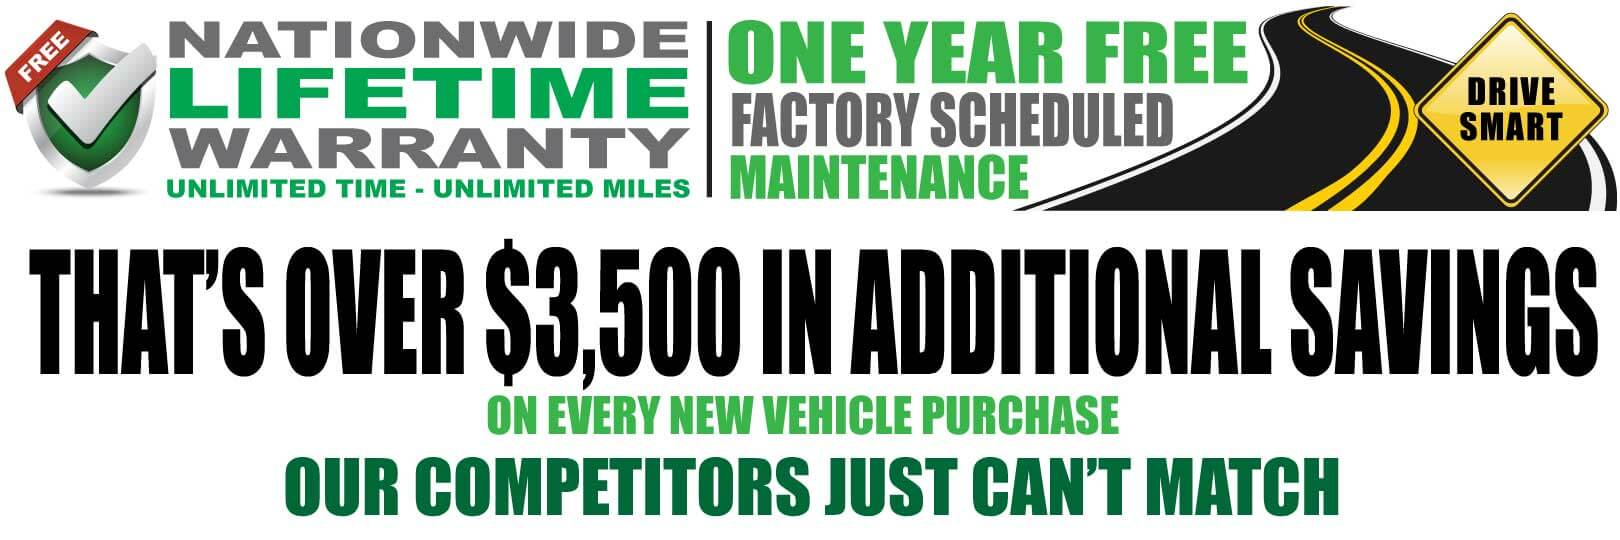 Lakeland Automall Nationwide Lifetime Warranty View Ford Inventory